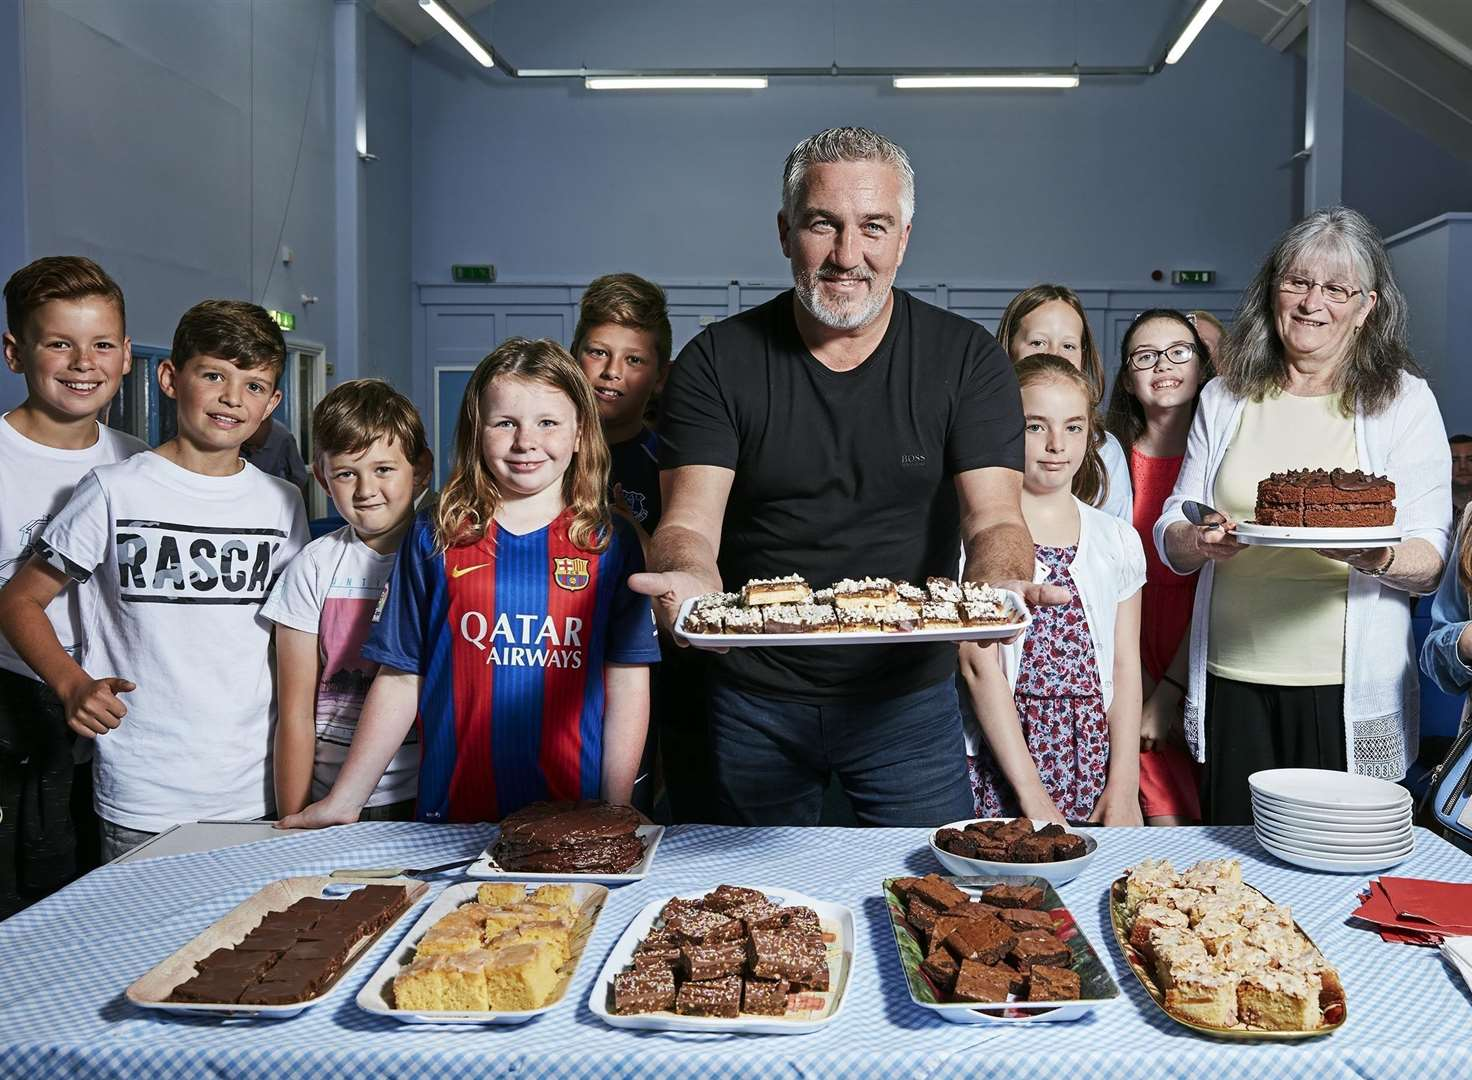 Paul Hollywood: It's a baker's life for me